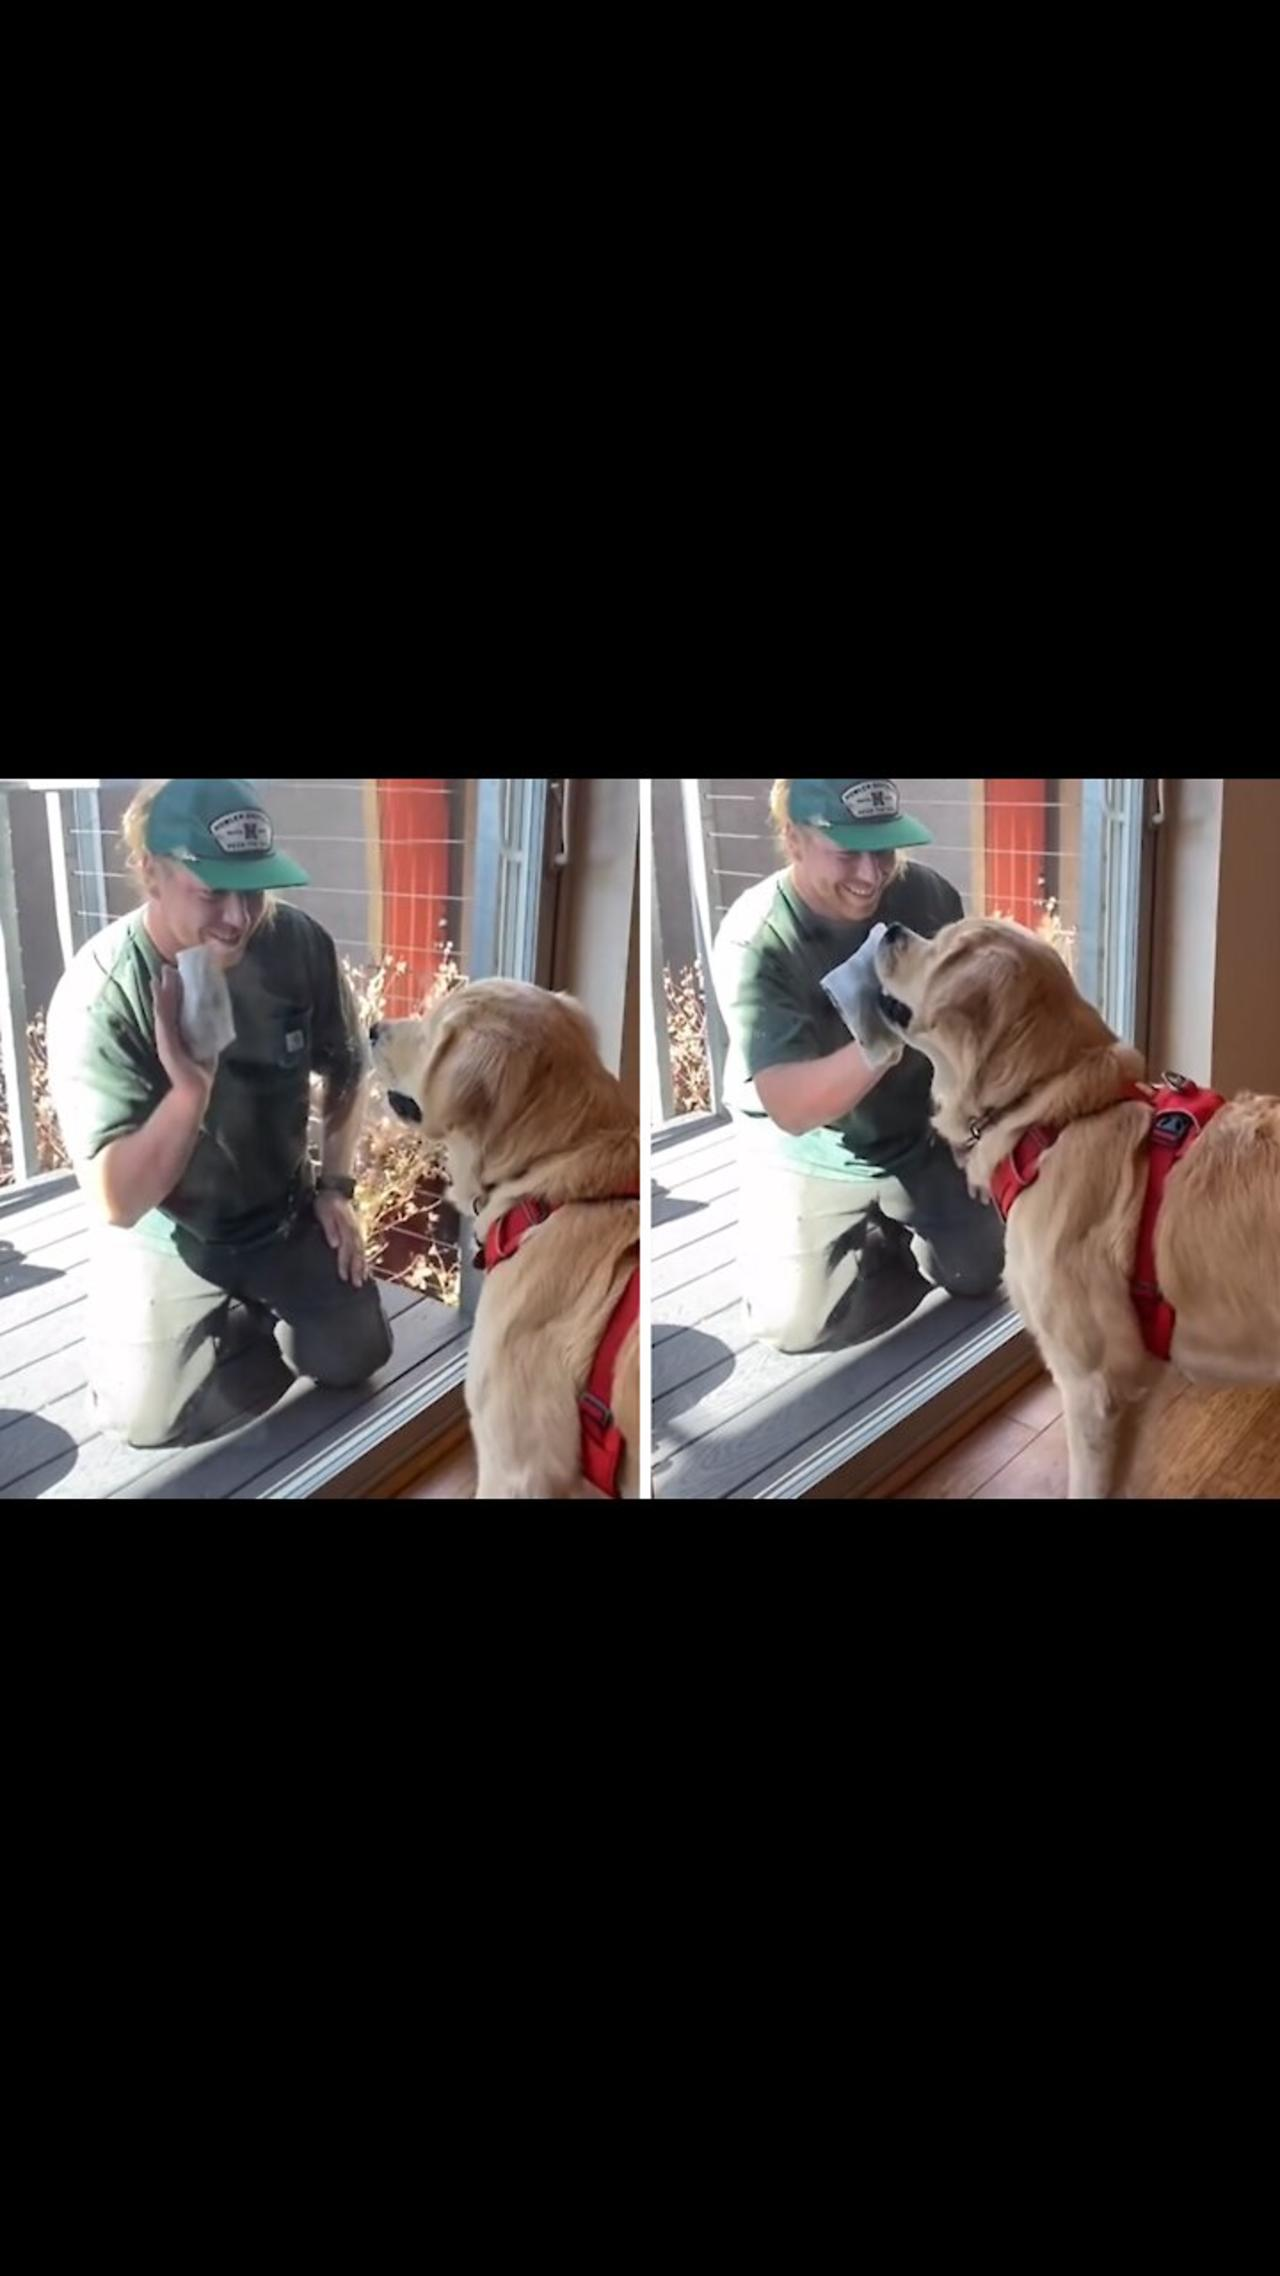 Hard-working doggy 'helps' owner clean the windows